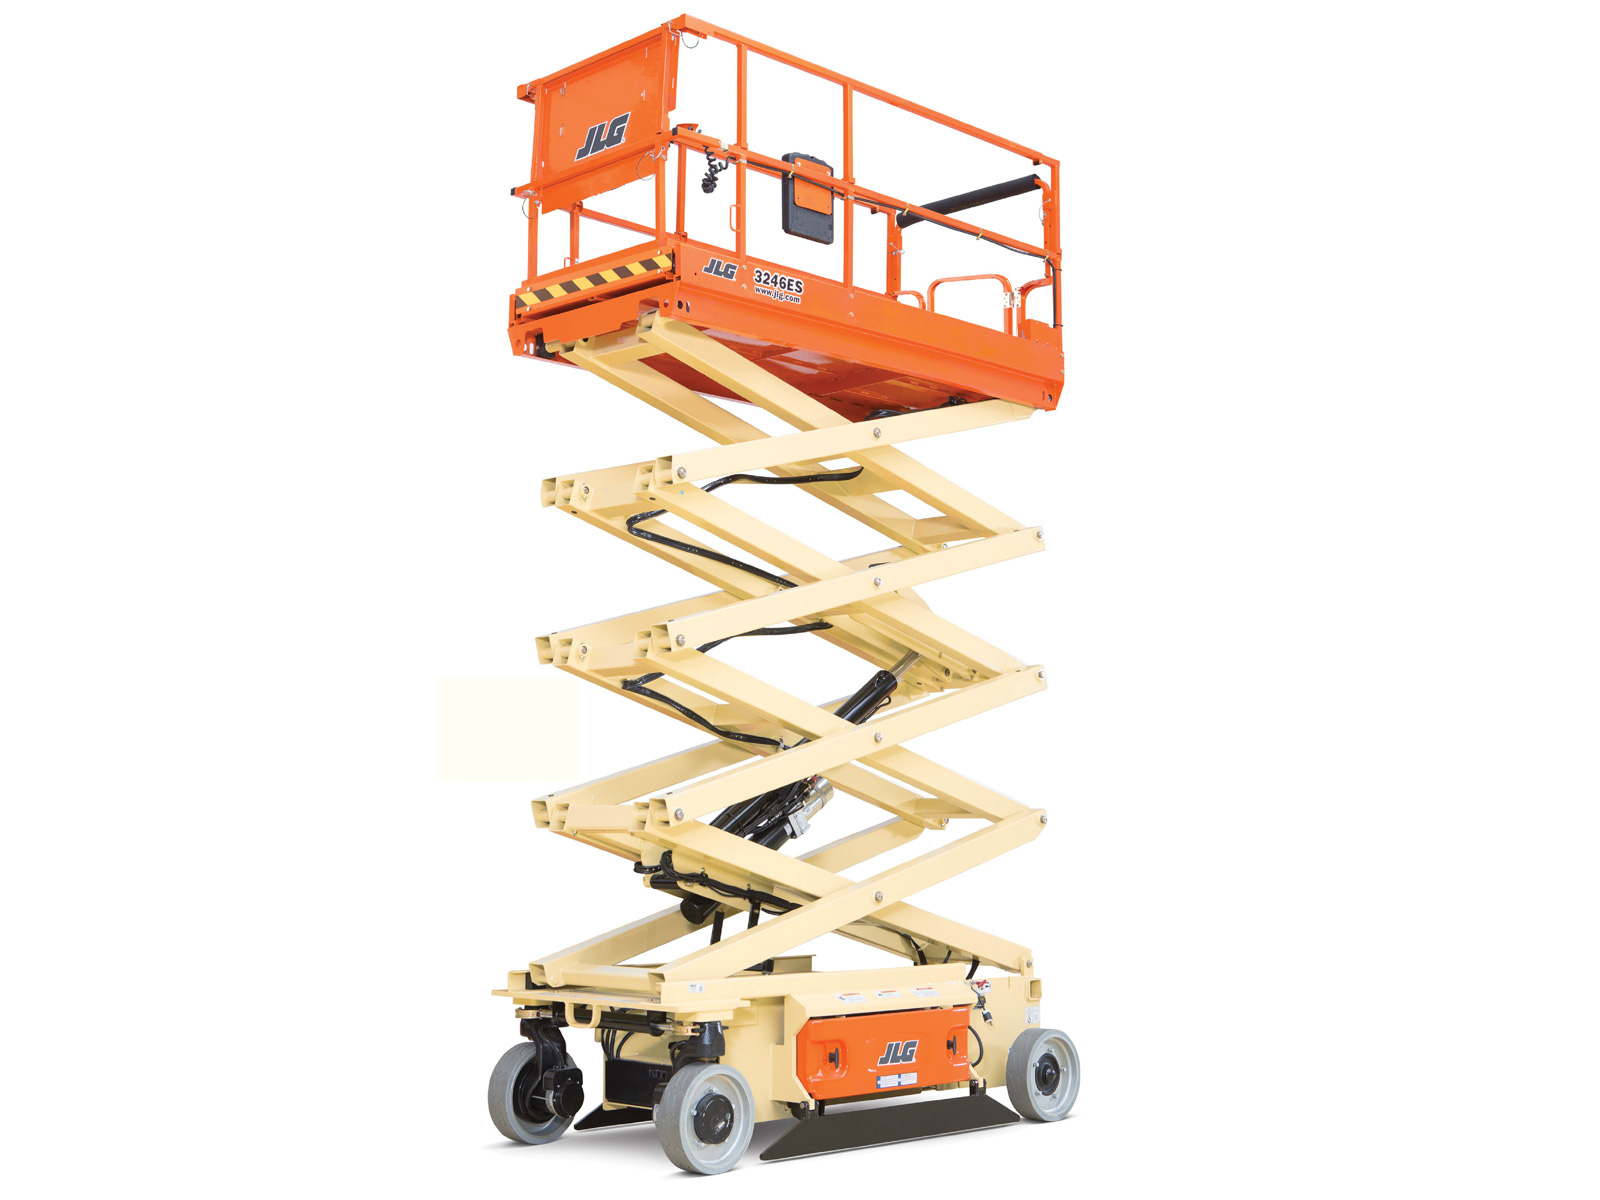 3246es electric scissor lift jlg rh jlg com 7 Pin Trailer Wiring Diagram IMT 539 Wiring-Diagram